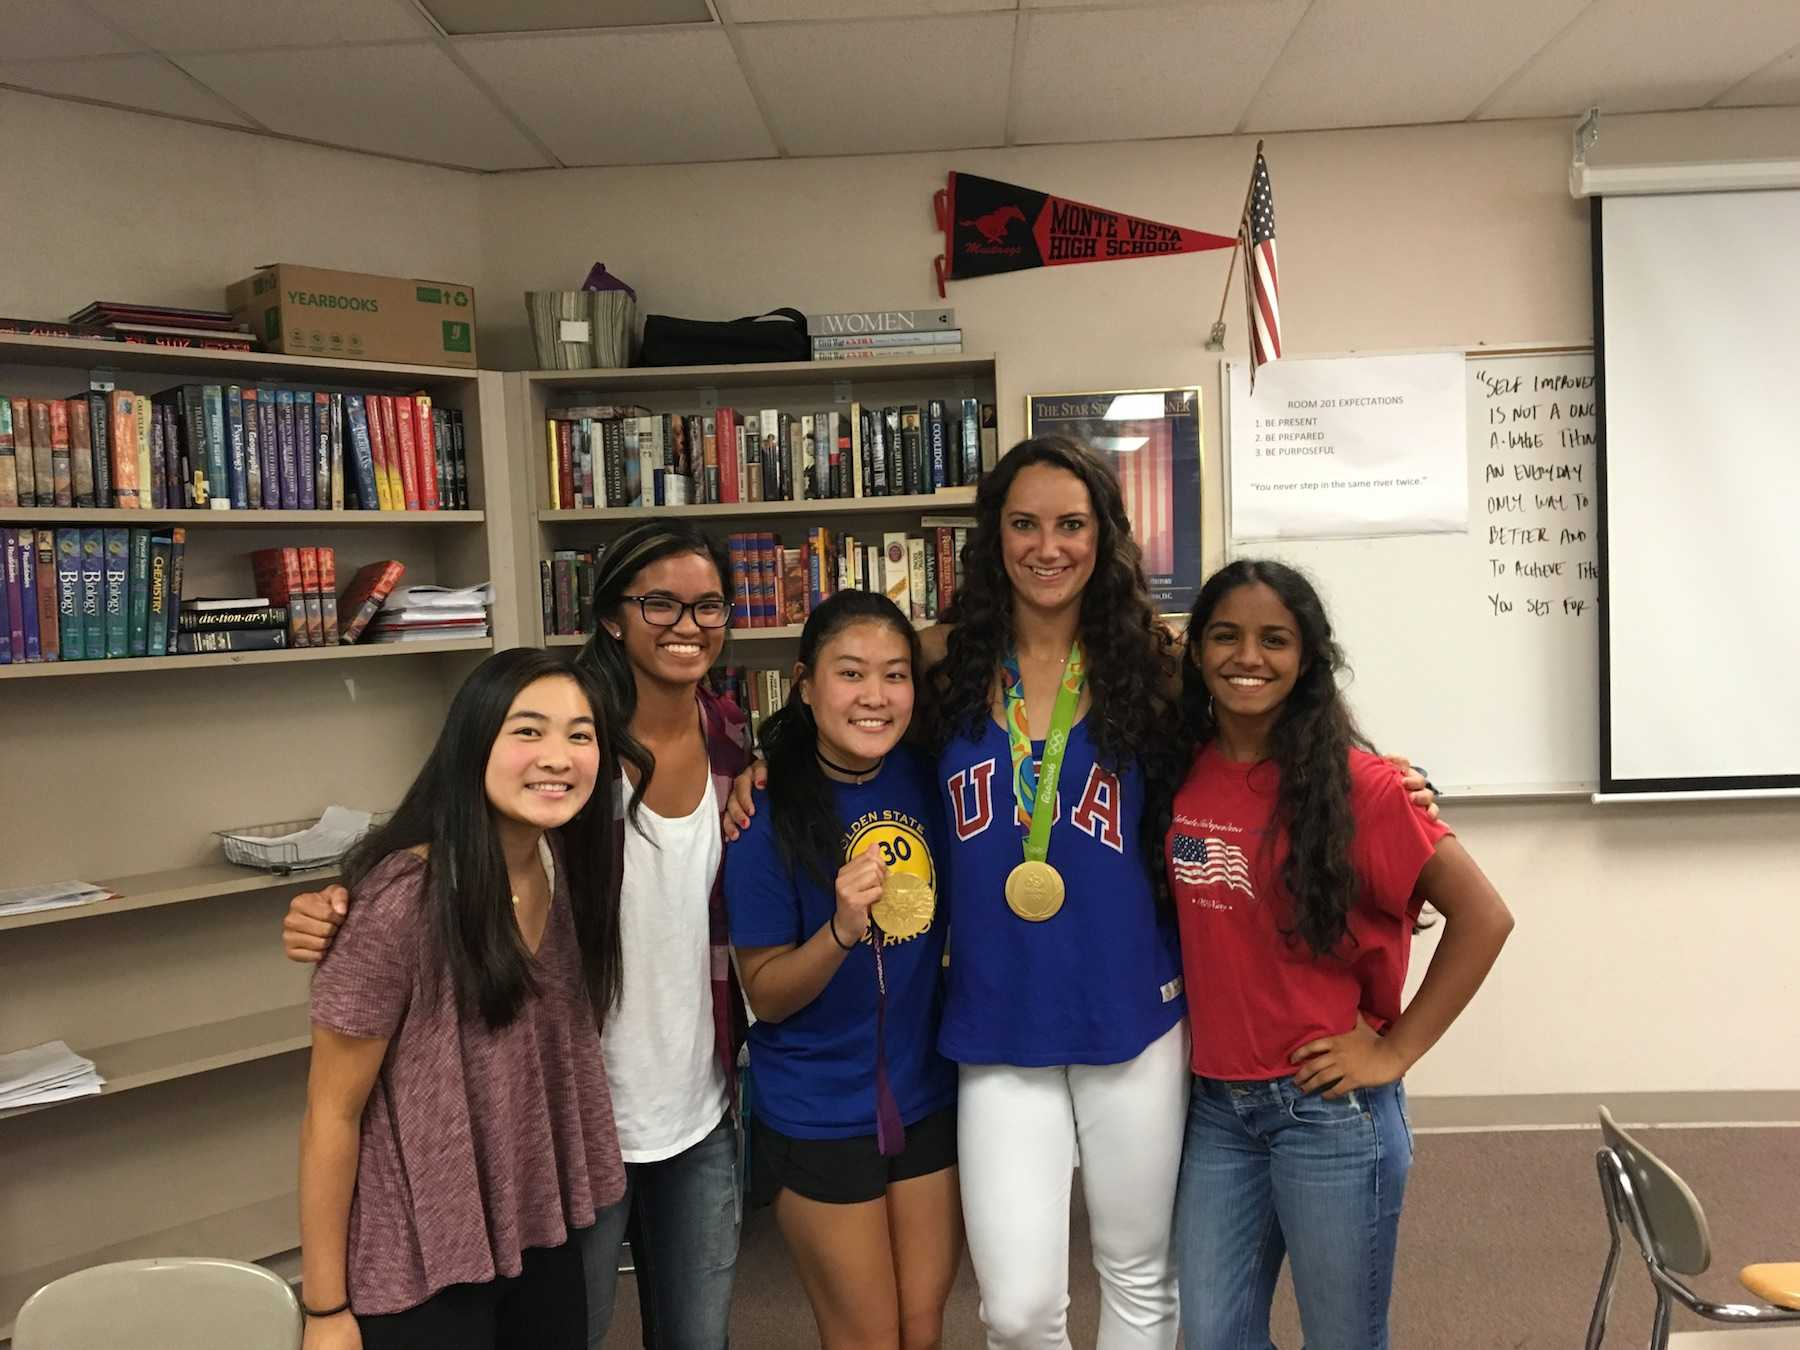 Maggie Steffens poses with Megan Okazaki, Katrina Flores, Taylor Okazaki, and Isha Satoor after school in Mr. Powers' room. (Courtesy of Megan Okazaki)